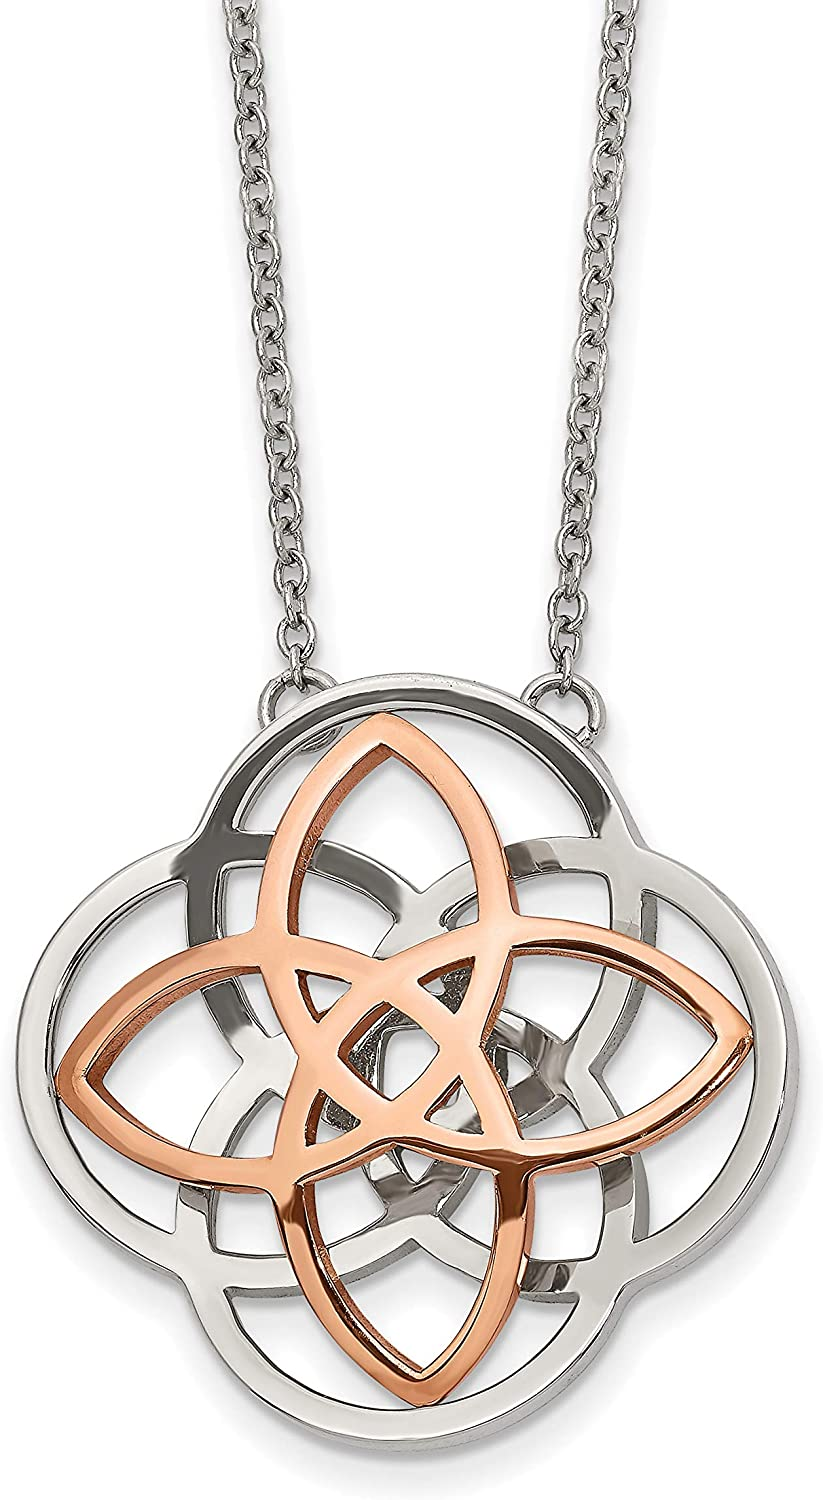 Stainless Steel Polished 3D Knot 16inw//2in ext Necklace